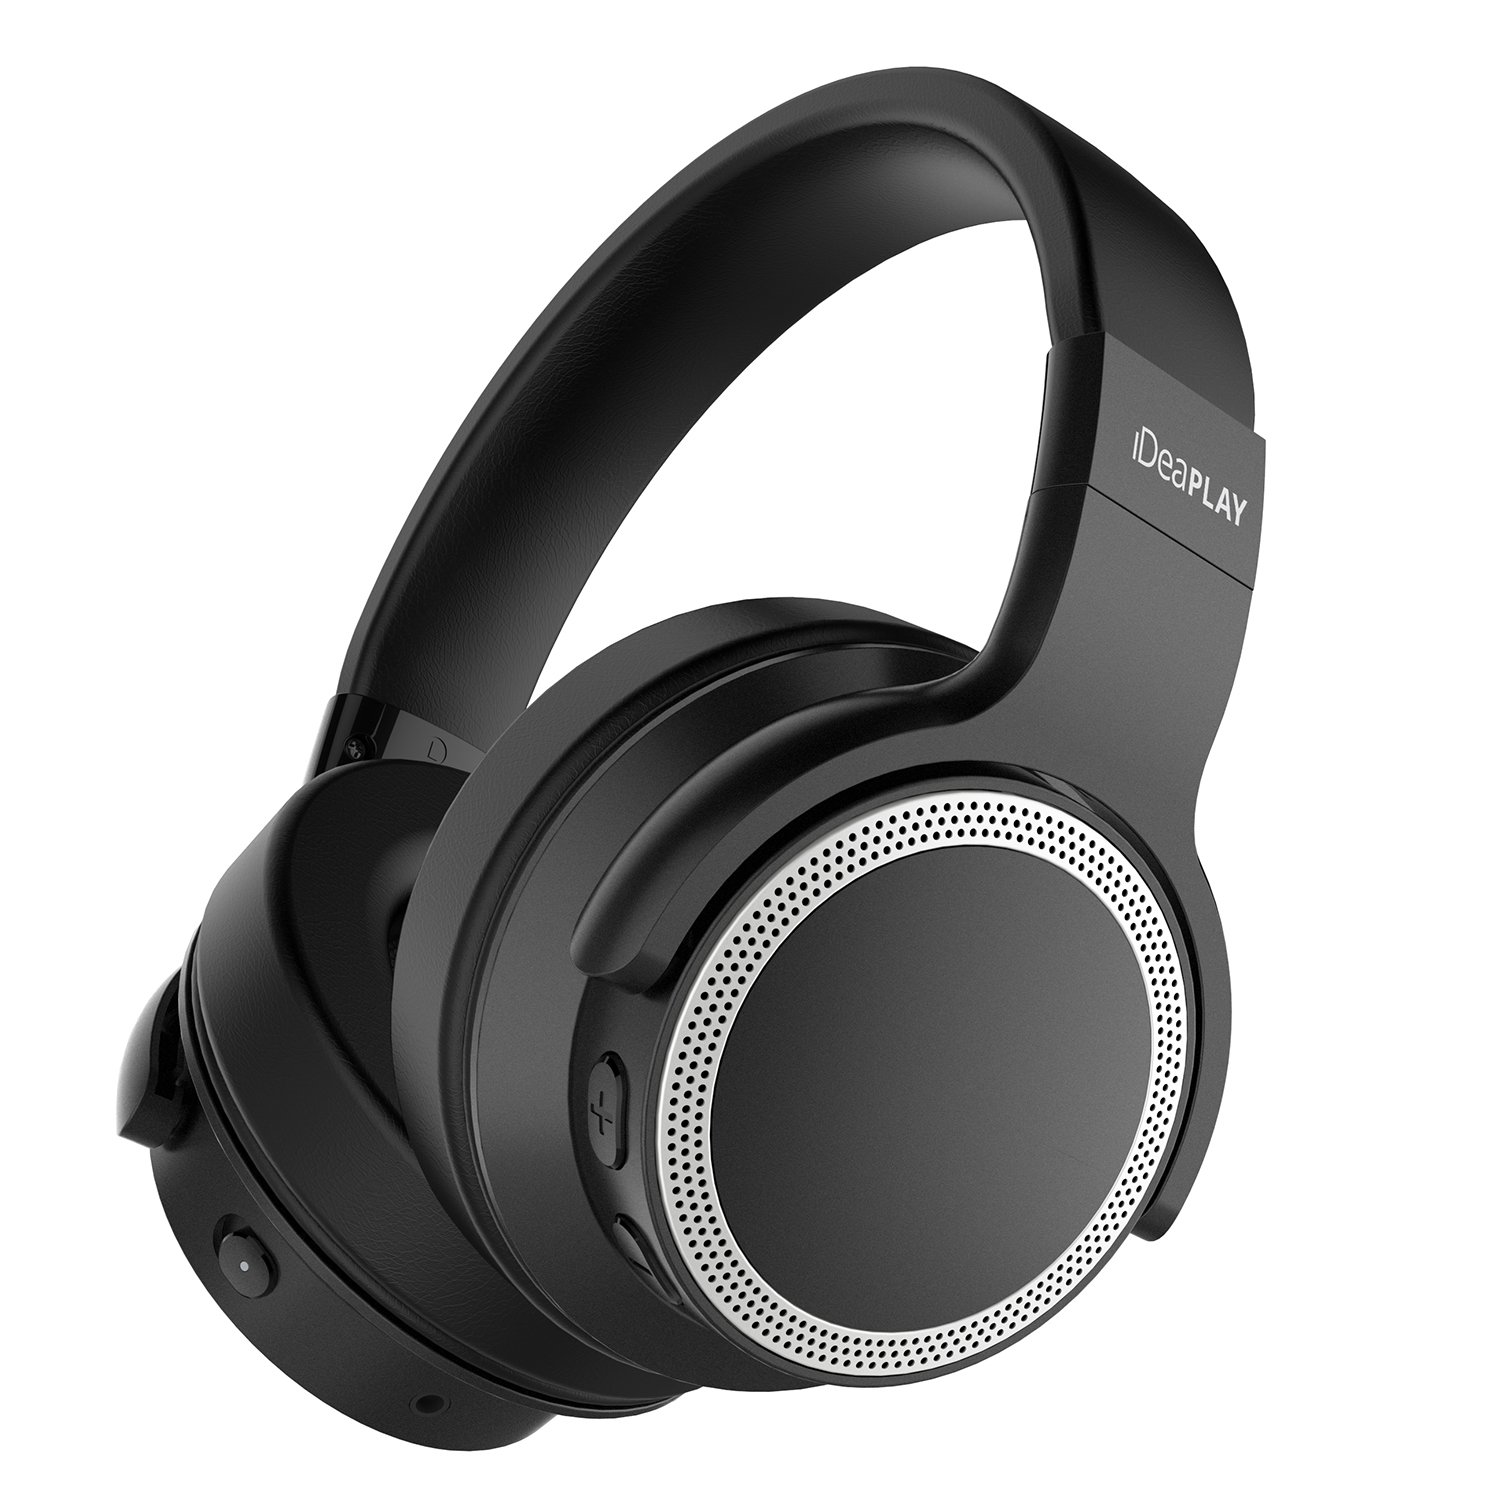 iDeaPLAY Active Noise Cancelling Headphones, Bluetooth 4.0 Wireless Over Ear Headphones with 28 Hours Playback, Foldable Headset with Built-in Microphone